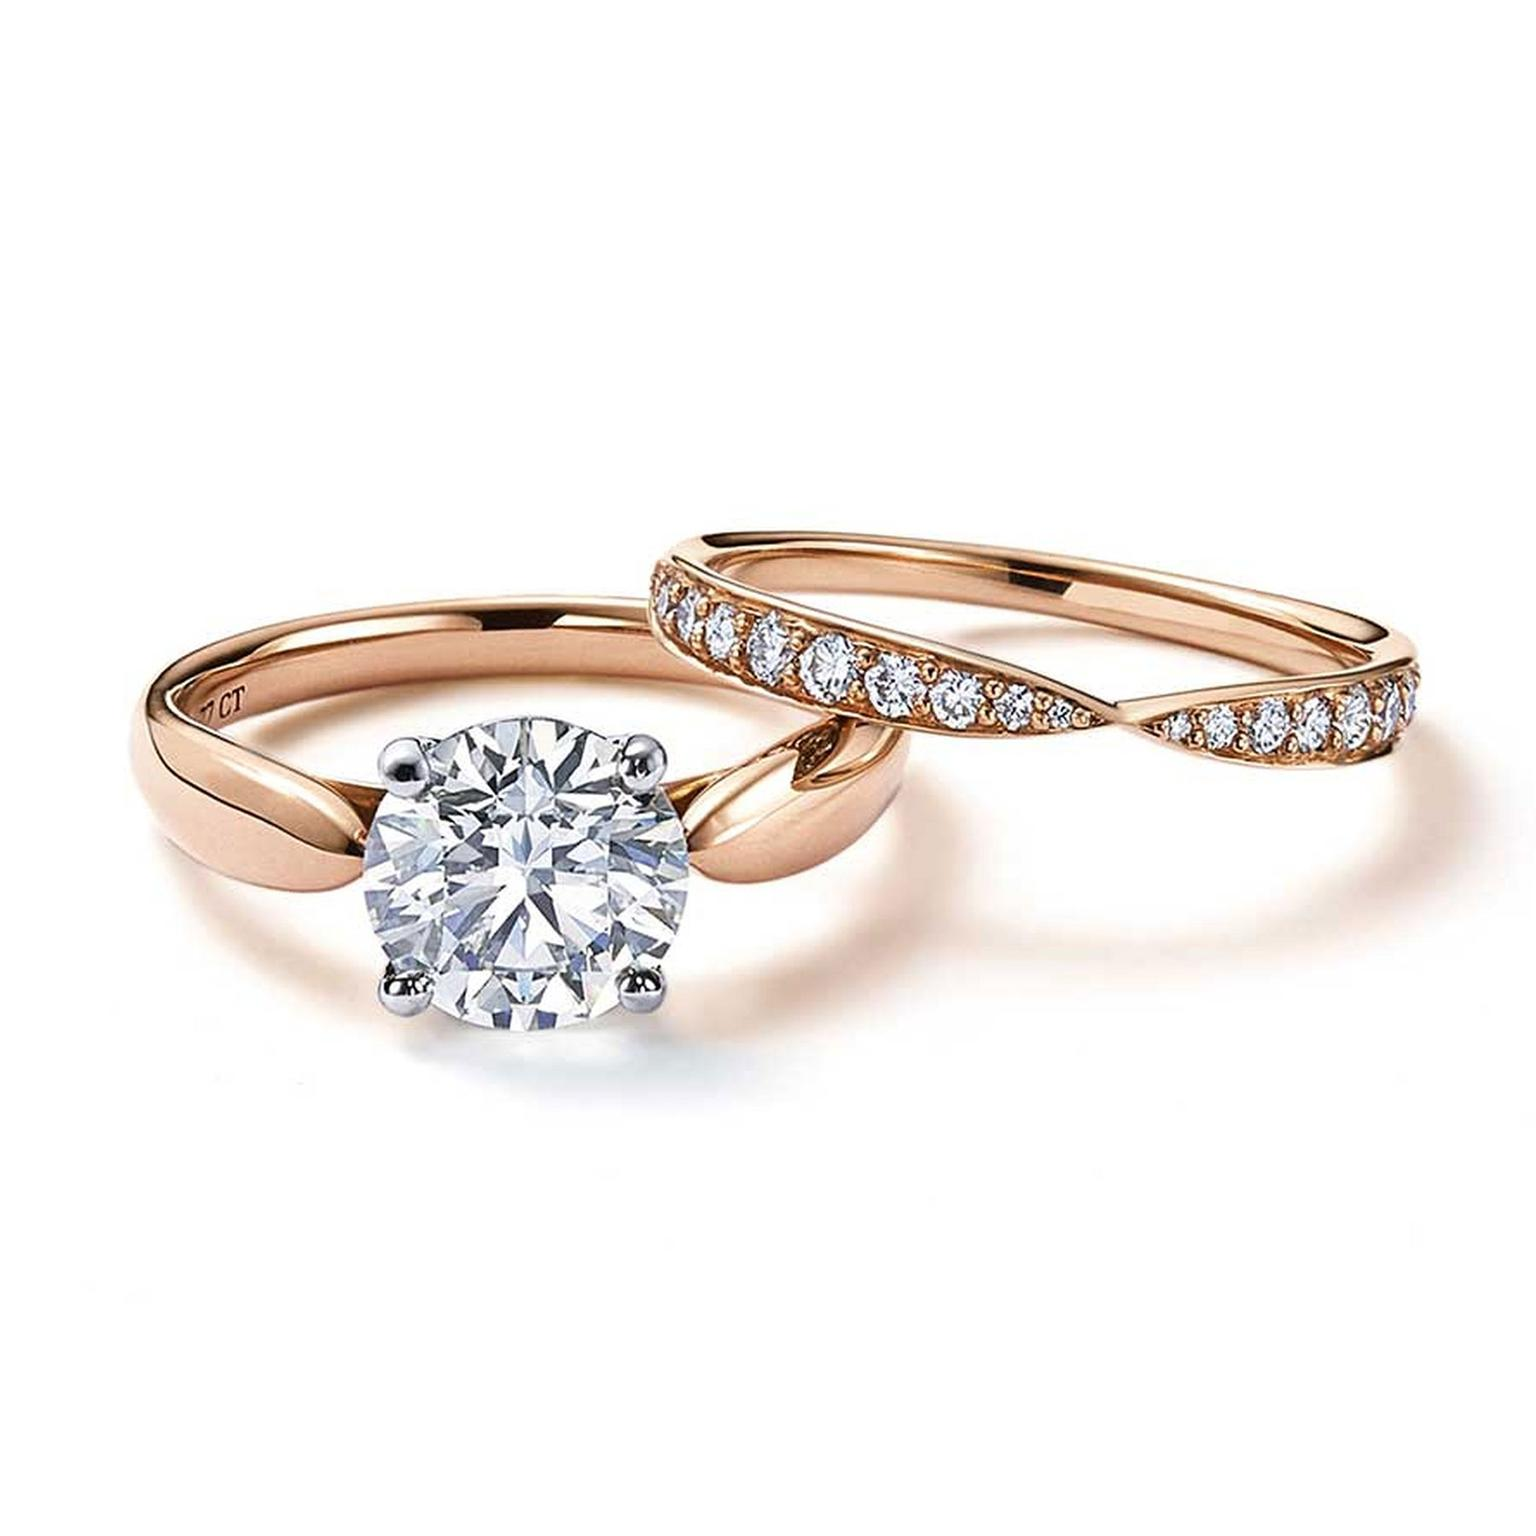 Tiffany Harmony Solitaire Diamond Engagement Ring In Rose Gold With A Matching Wedding